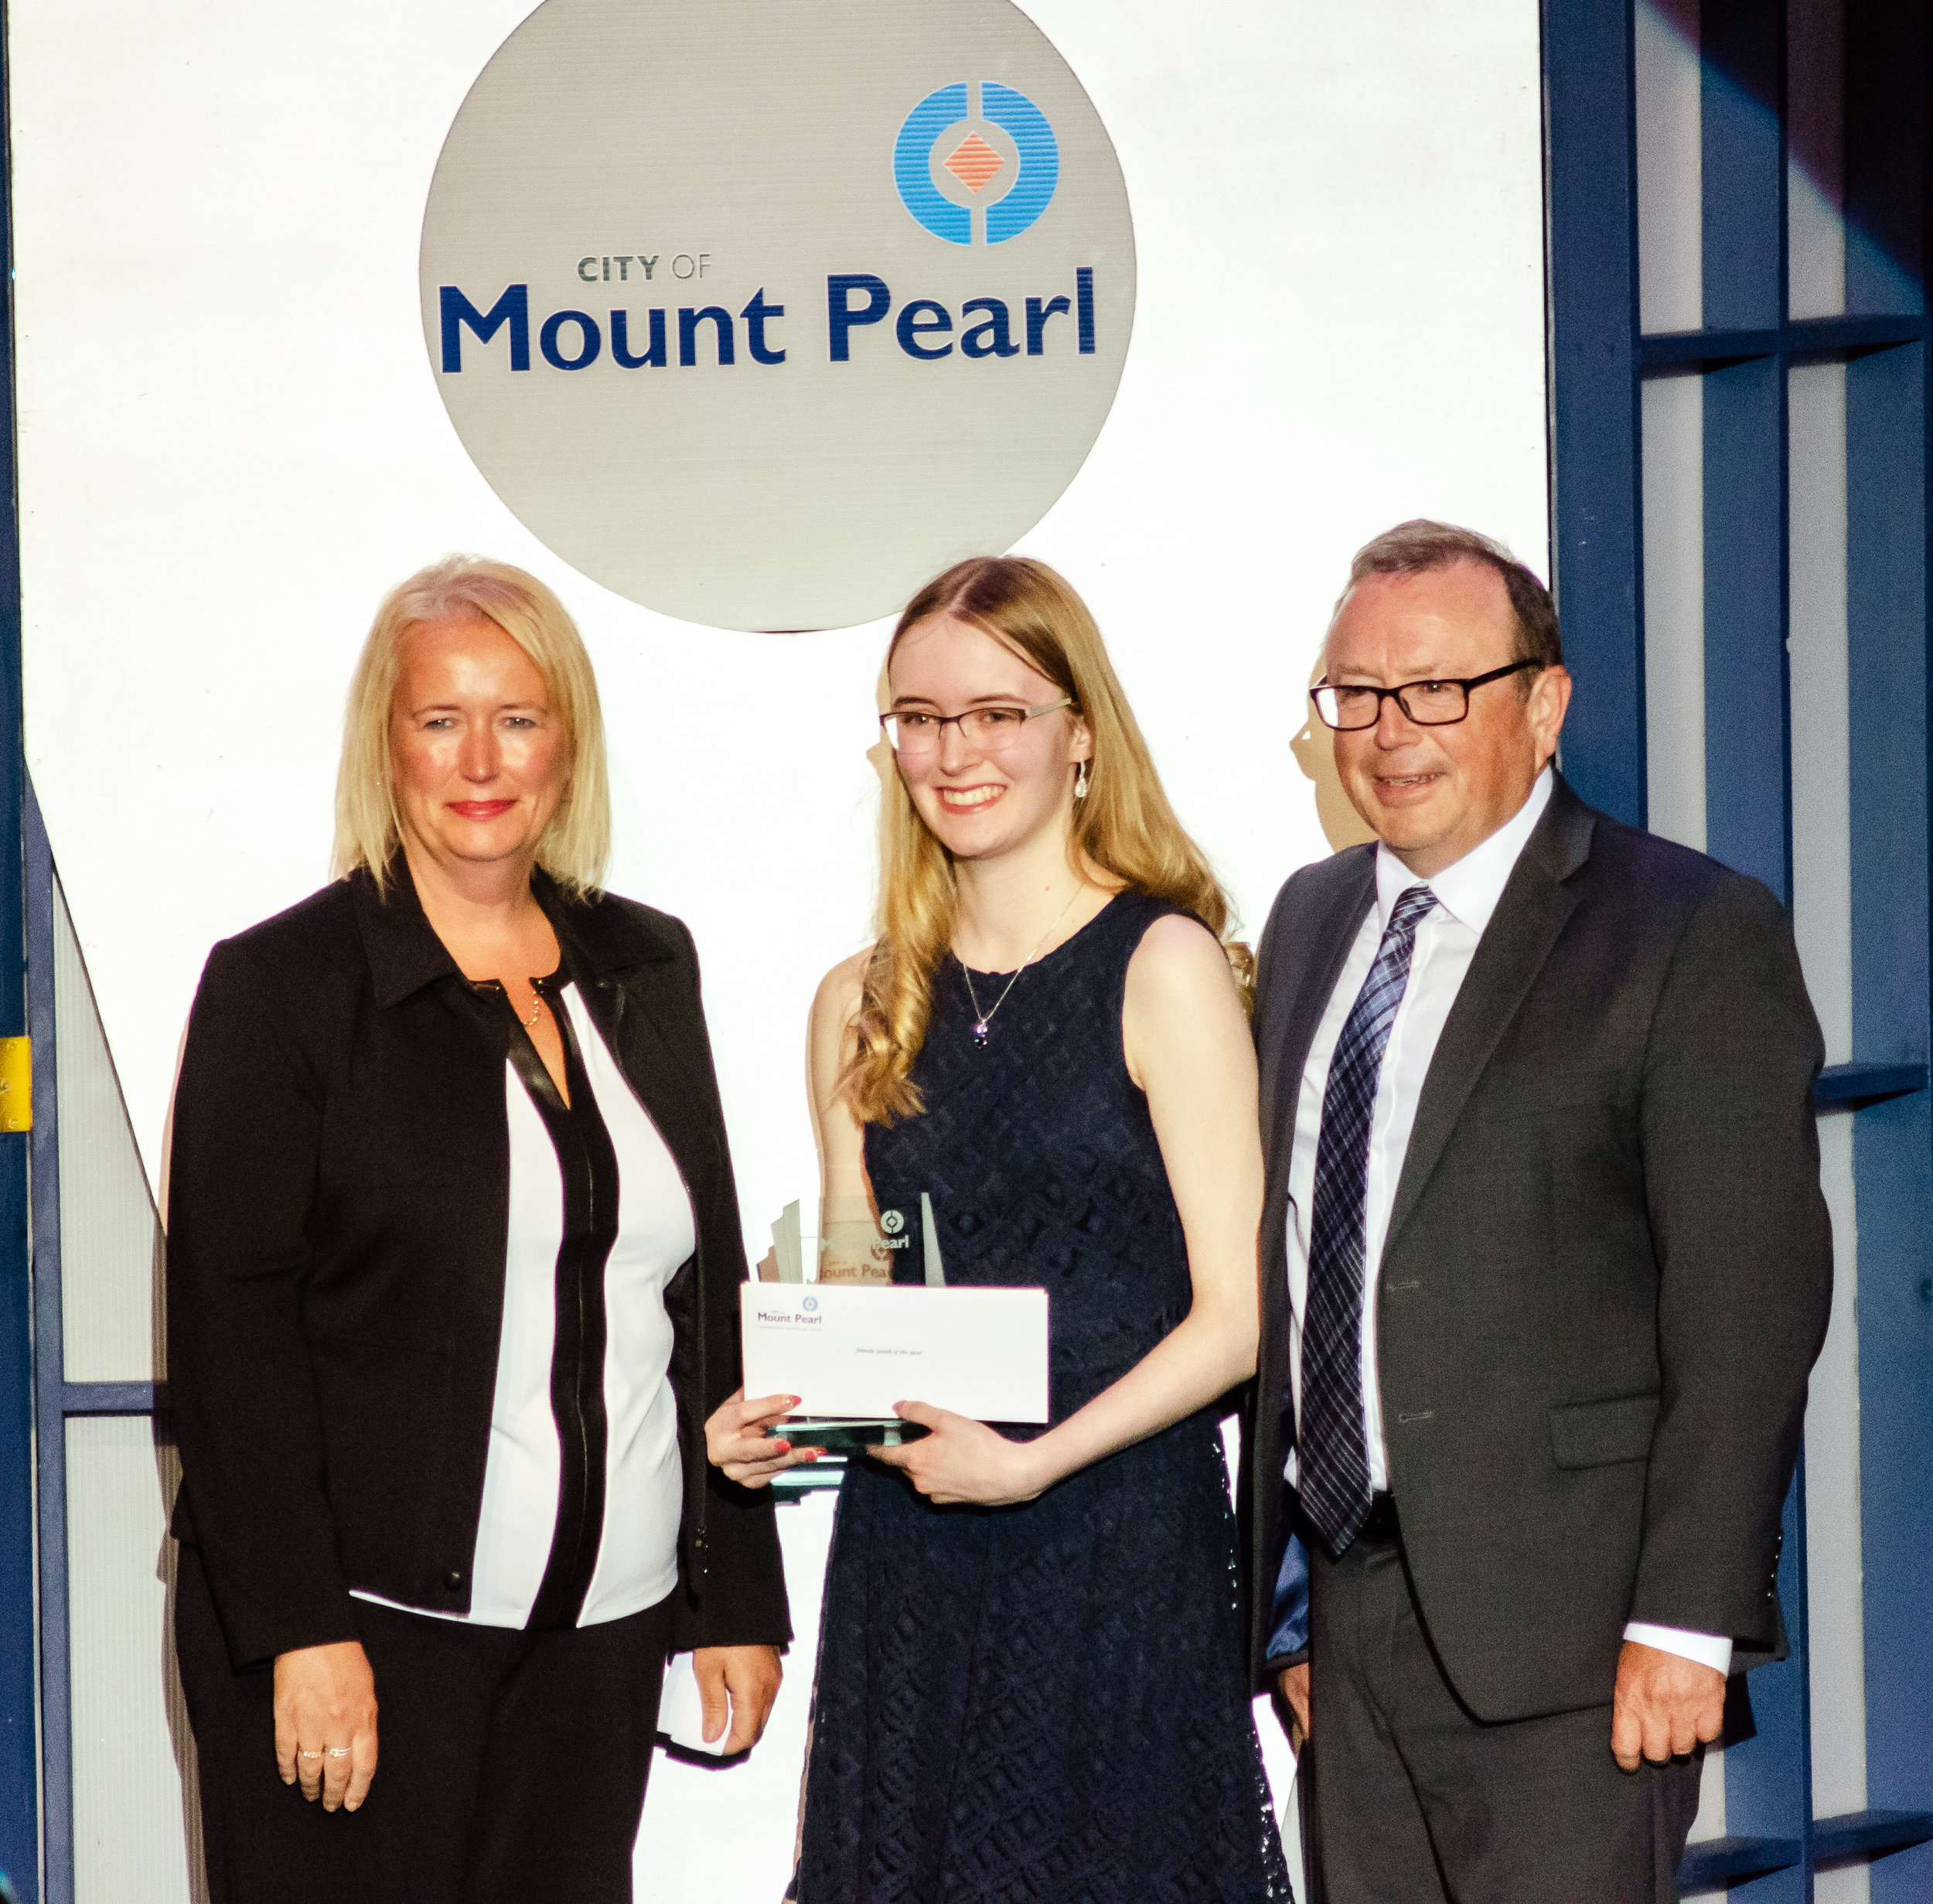 Dana Thompson, left, and Mount Pearl Mayor Dave Aker, right, present Youth of the Year Emily Garlie with a plaque at the Focus on Youth Awards held at the Glacier last week. Awards were presented in 16 categories.